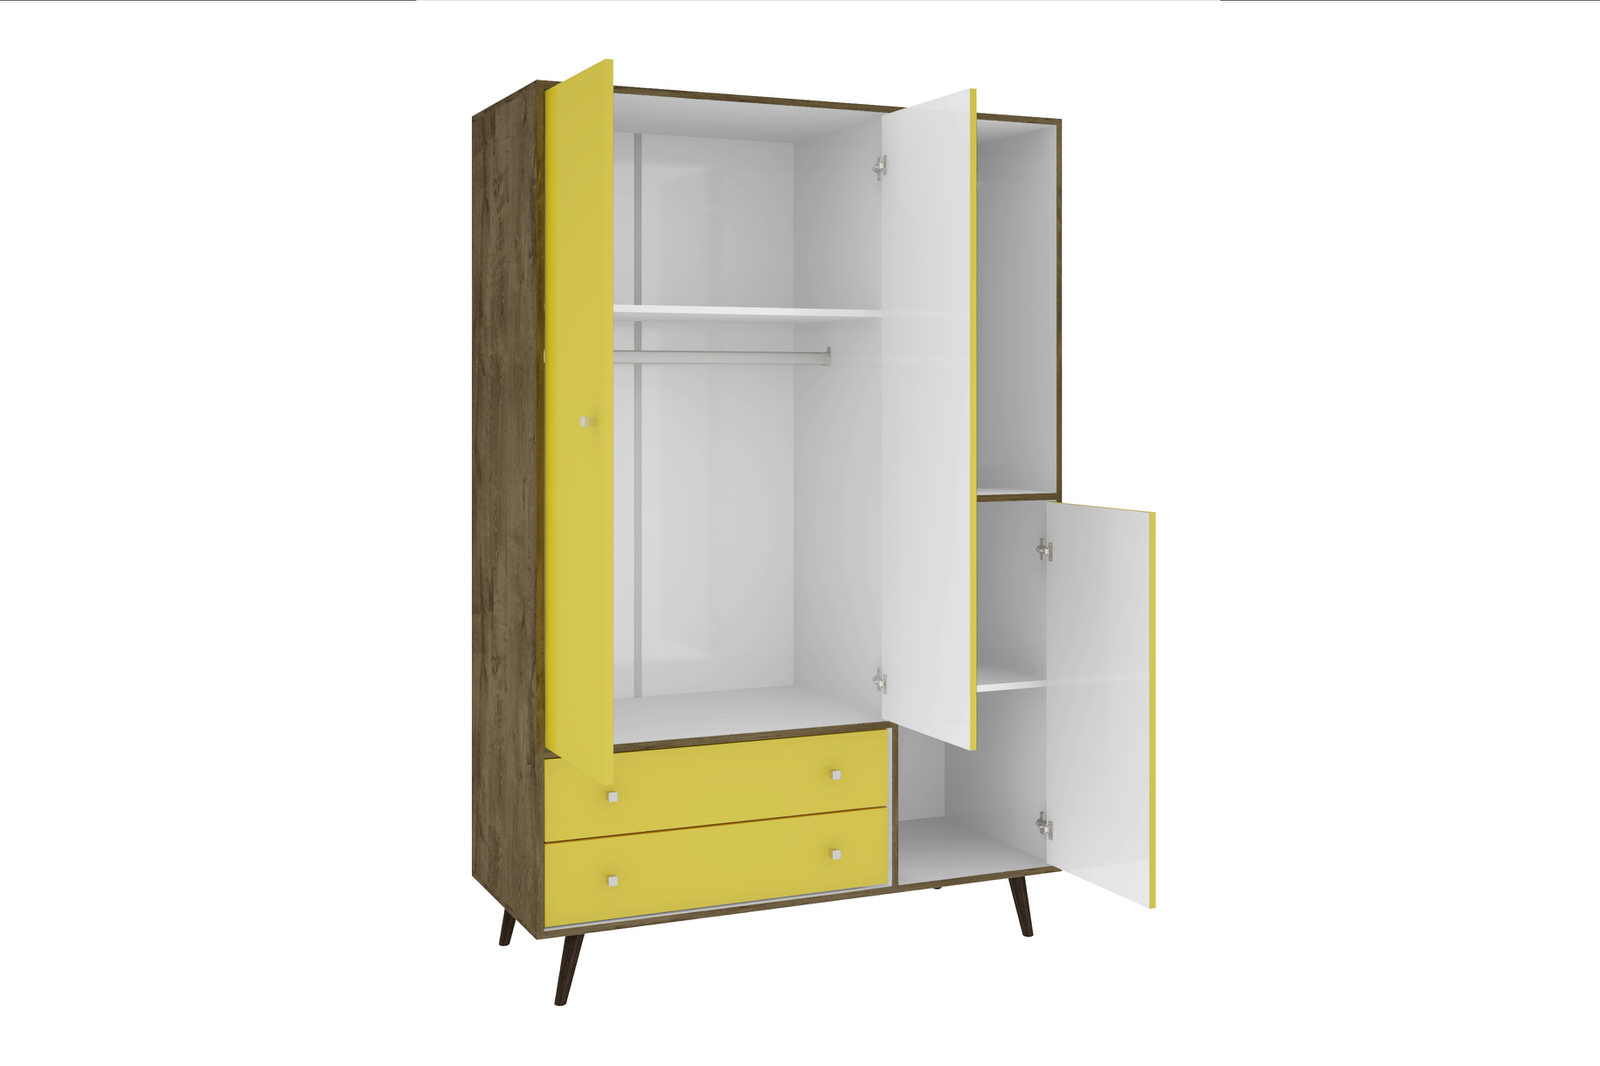 Liberty Rustic Brown U0026 Yellow 47.83 Inch Mid Century   Modern Armoire W/  Mirror, 4 Shelves, 2 Drawers U0026 Hanging Rod By Manhattan